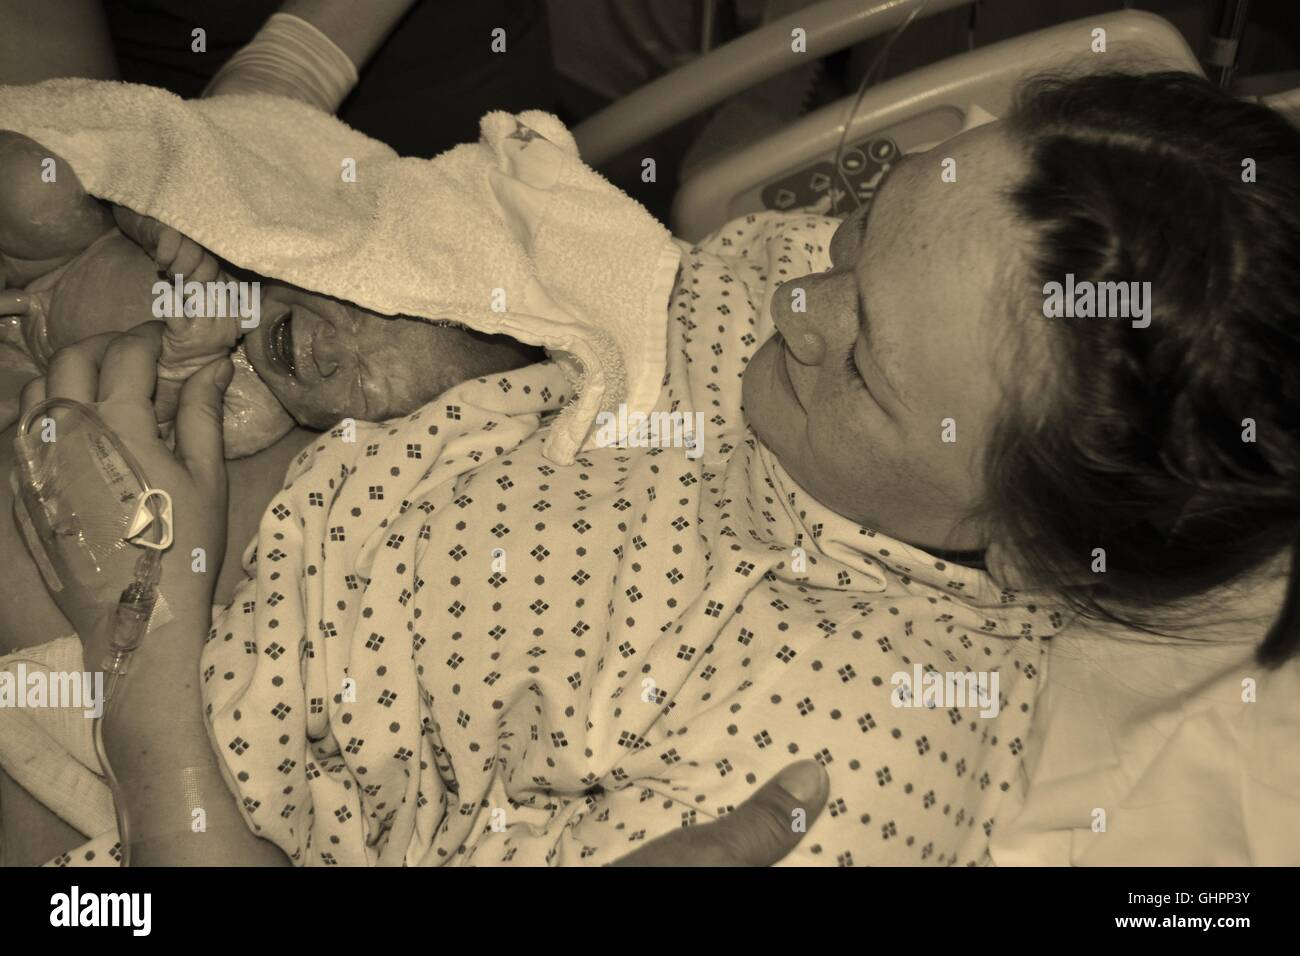 New born baby and mother in hospital bed - Stock Image